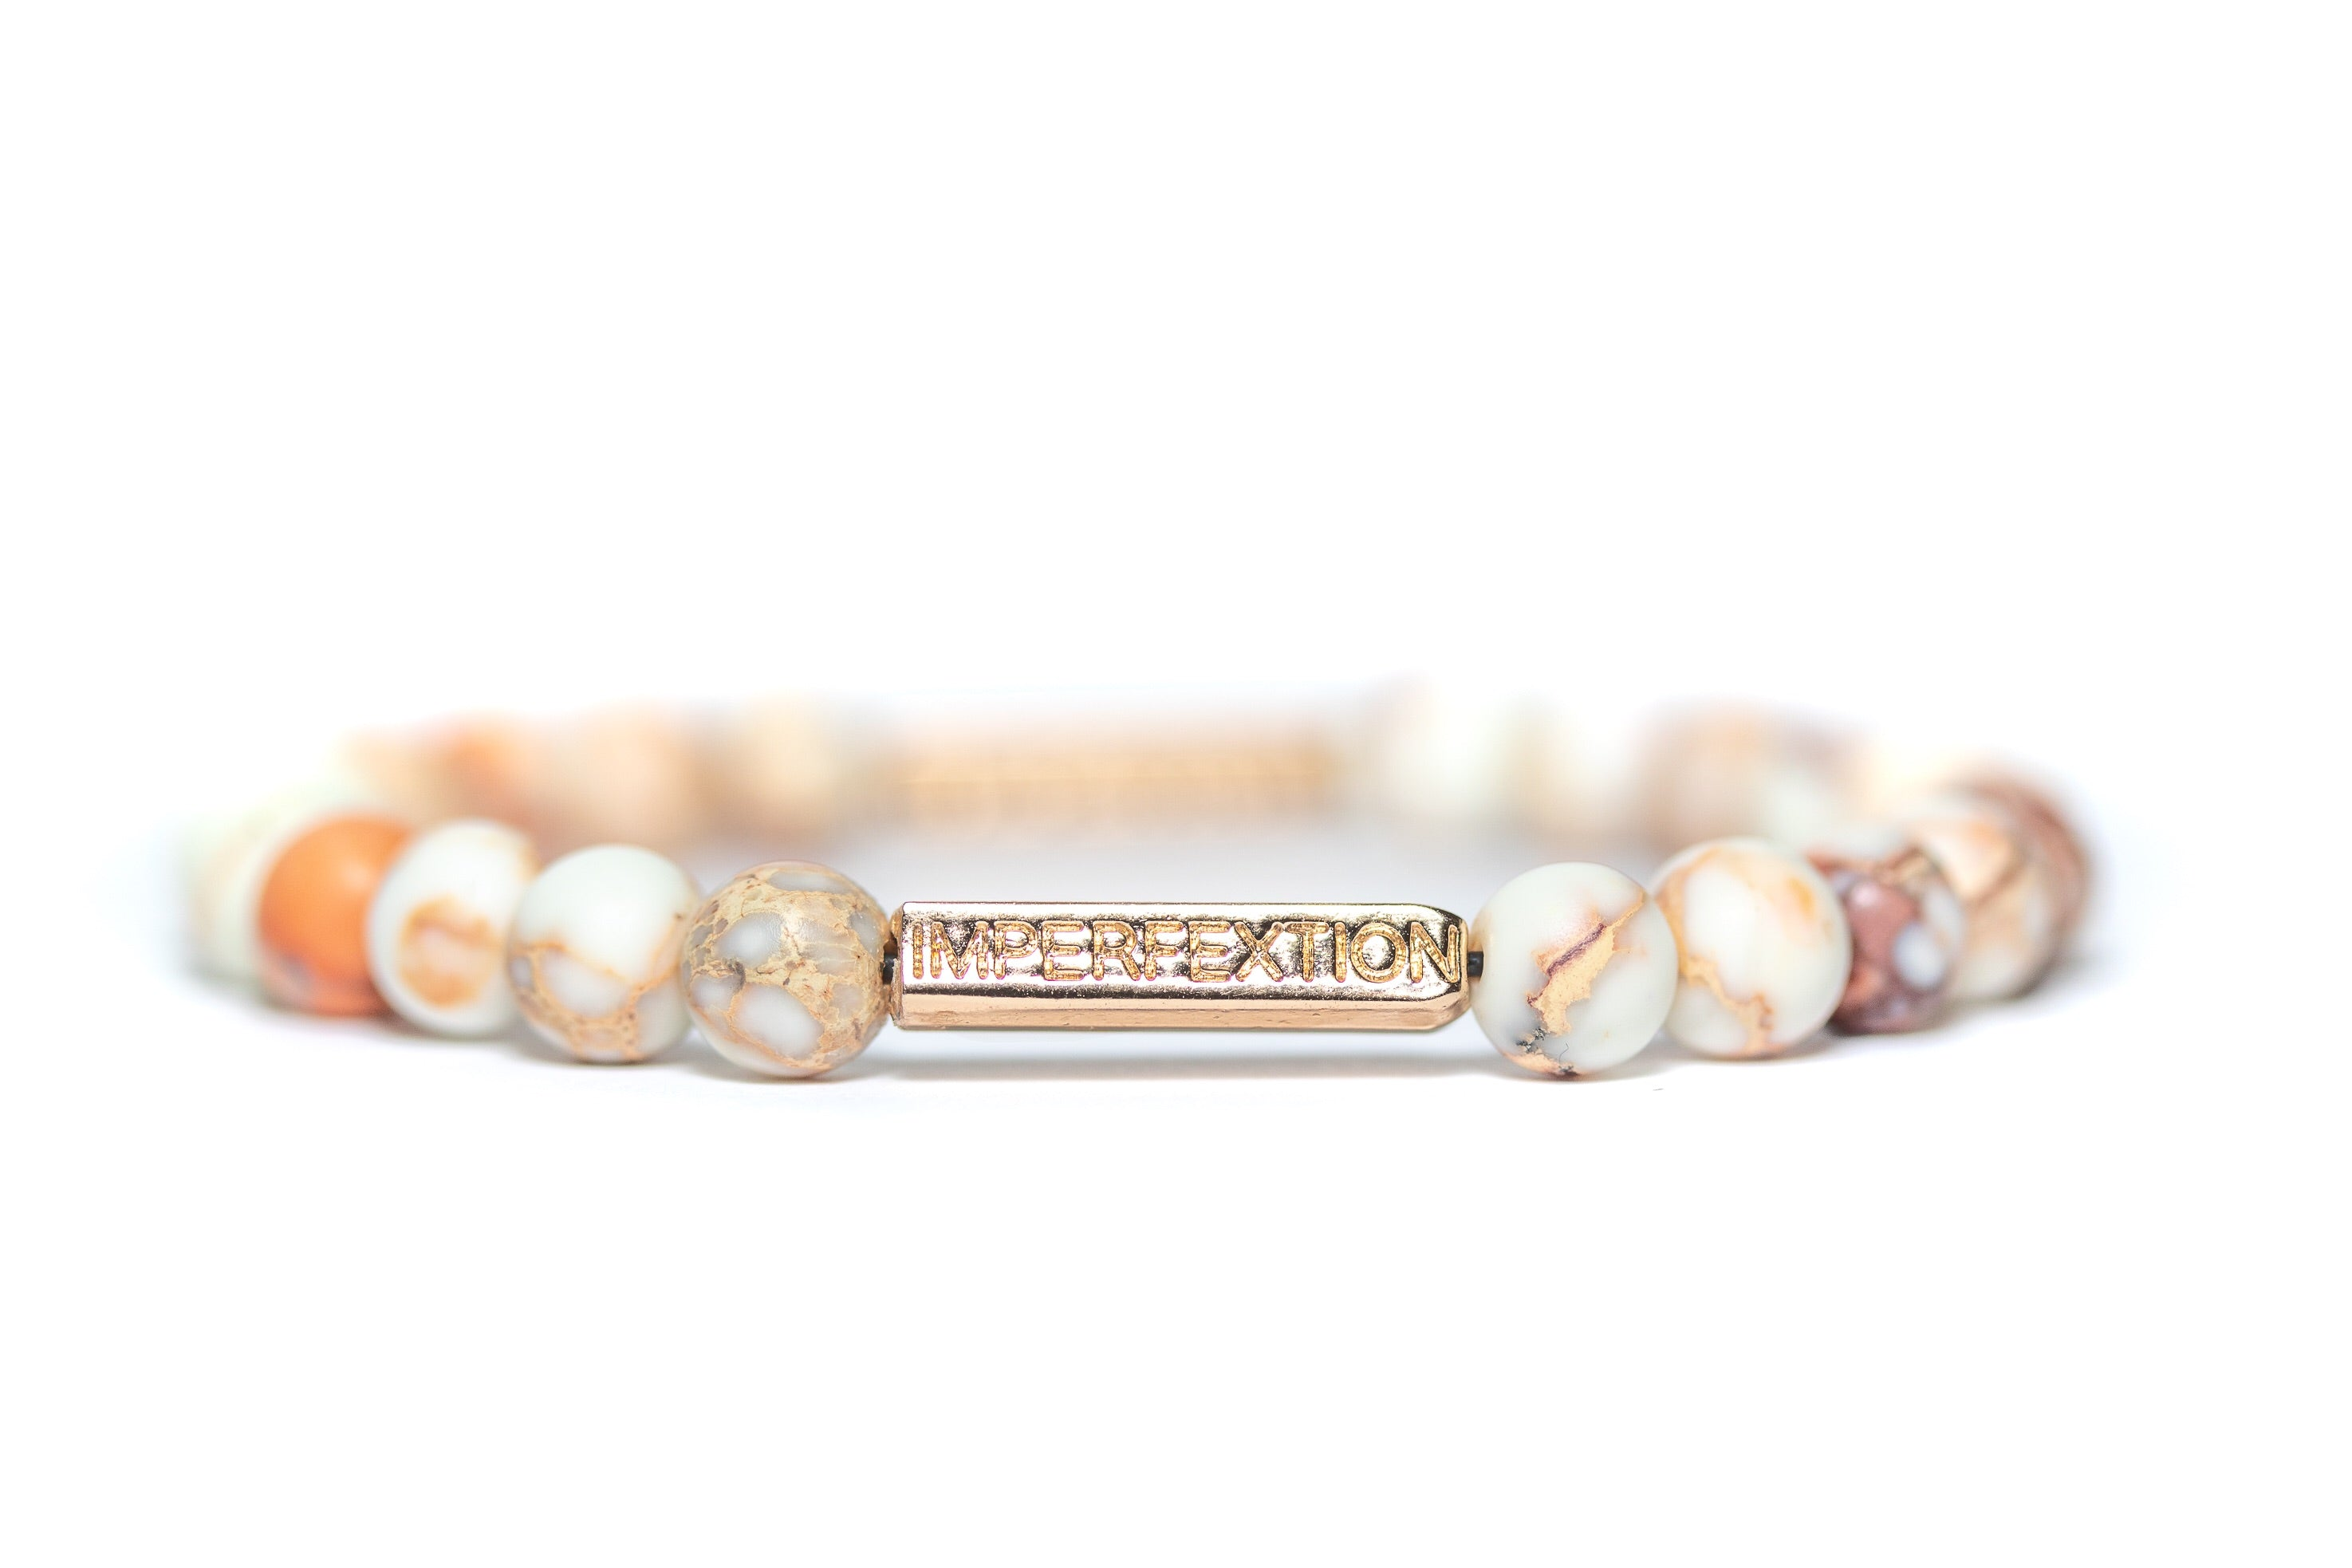 (2019 SPRING SEASON) MATTE SEA SEDIMENT JASPER IMPERFEXTION BRACELET